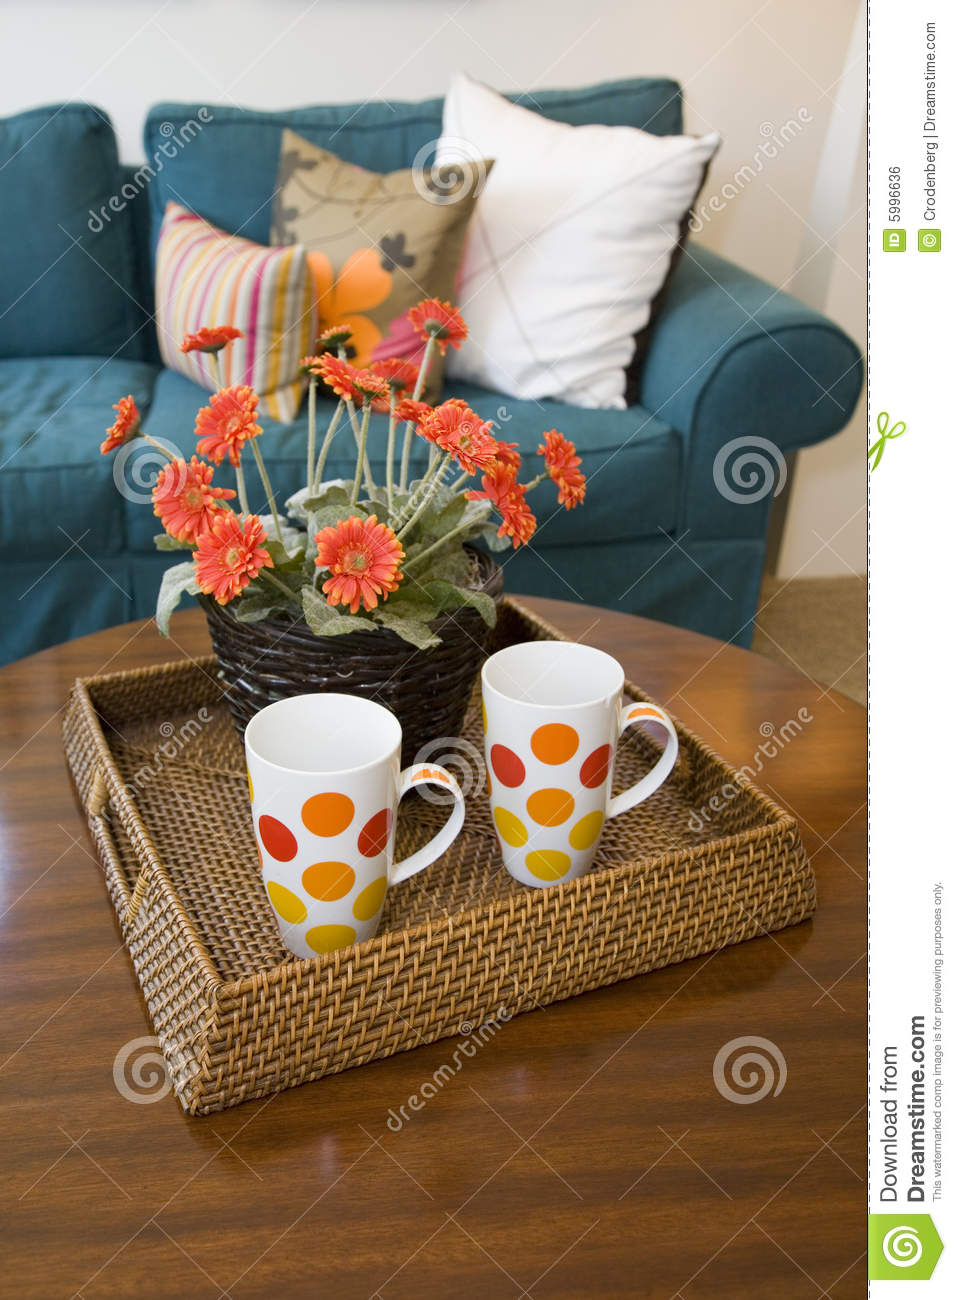 Modern home decor royalty free stock image image 5996636 for Modern home decor for less